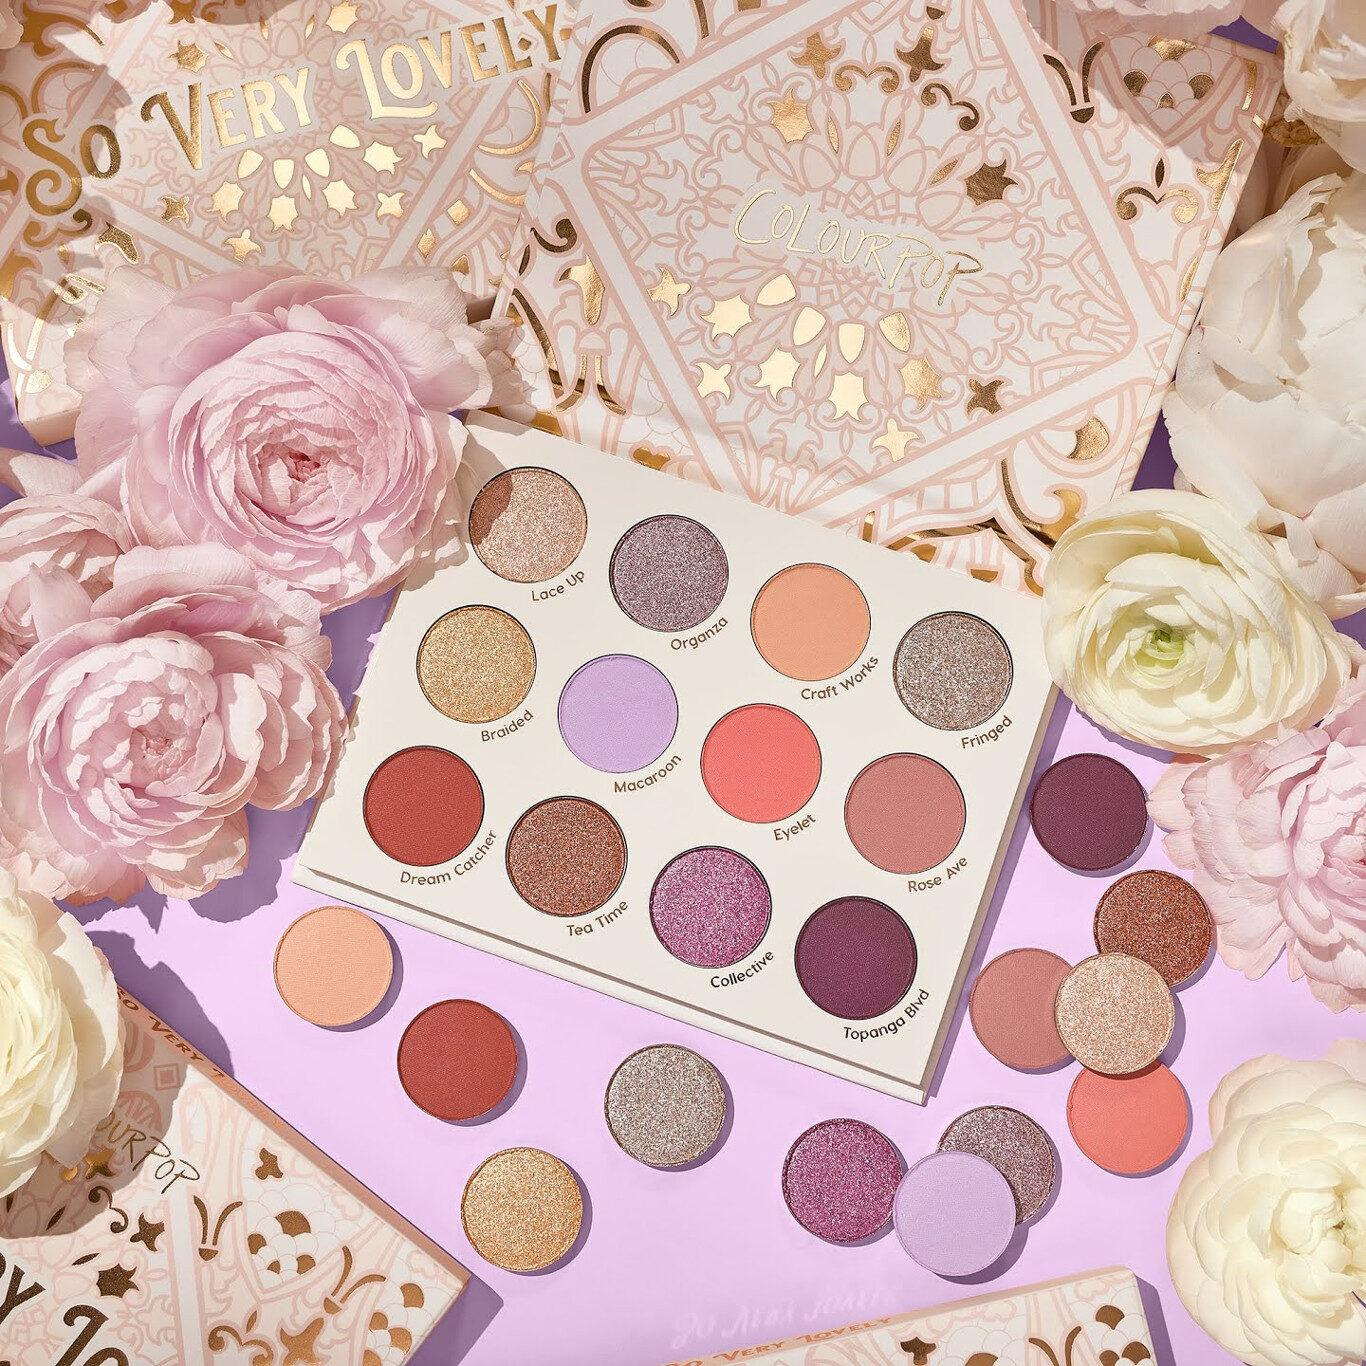 Colourpop So Very Lovely Collection So Very Lovely Pressed Powder Palette Promo